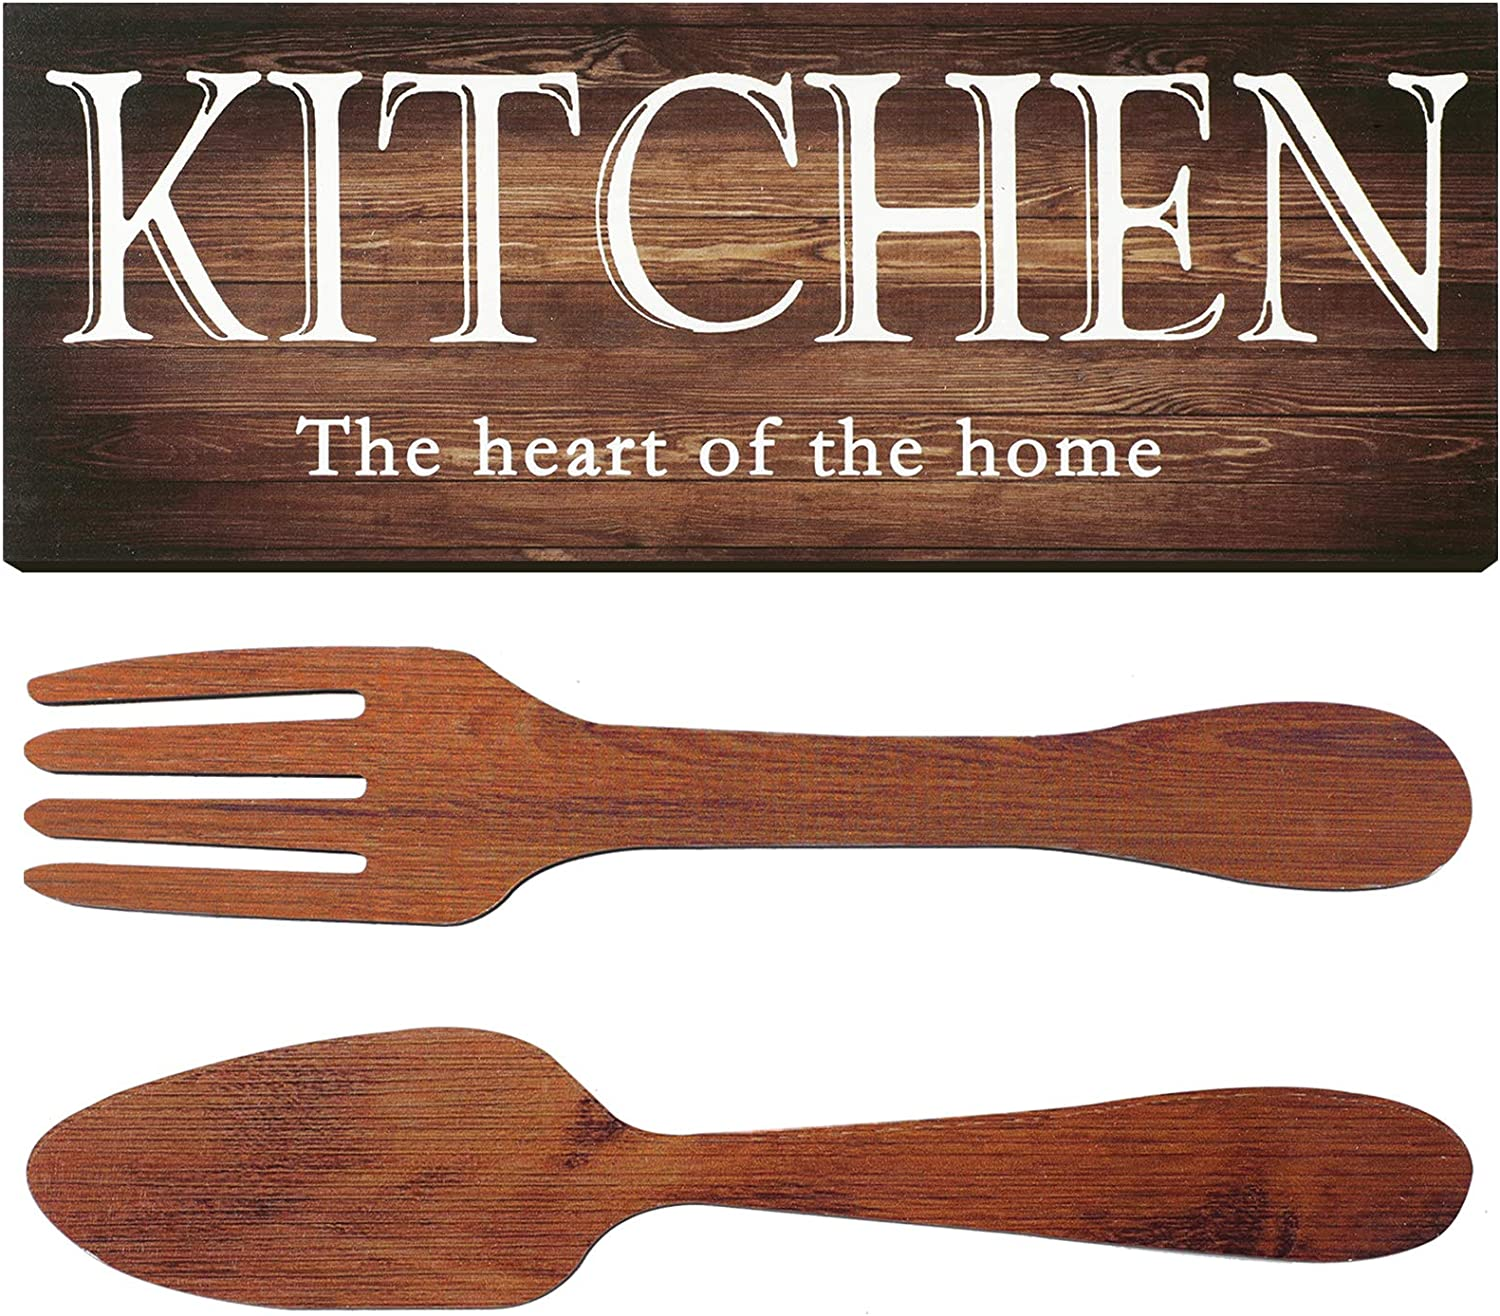 Kitchen Sign Set, Fork and Spoon Wall Decor Kitchen The Heart of The Home Sign Wood Rustic Kitchen Decoration Farmhouse Kitchen Wall Decor for Home Dining Room Housewarming Kitchen Decor (Brown)